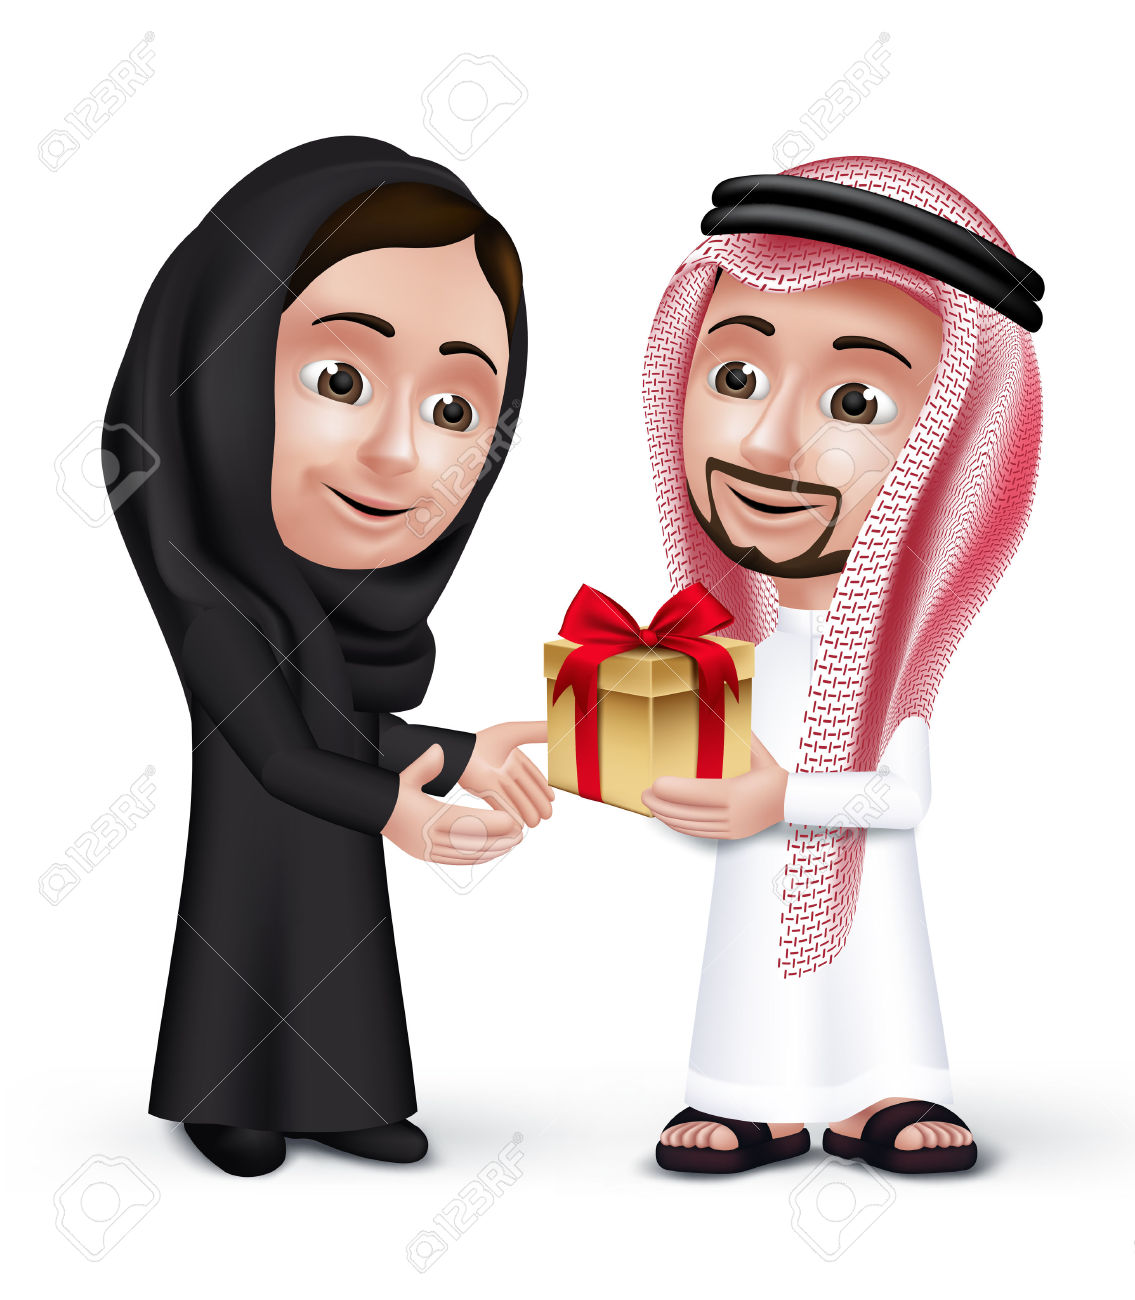 41070920-Realistic-Saudi-Arab-Man-Wearing-Thobe-Giving-Golden-Gift-with-Red-Ribbon-in-a-Beautiful-Woman-Weari-Stock-Vector-1-2